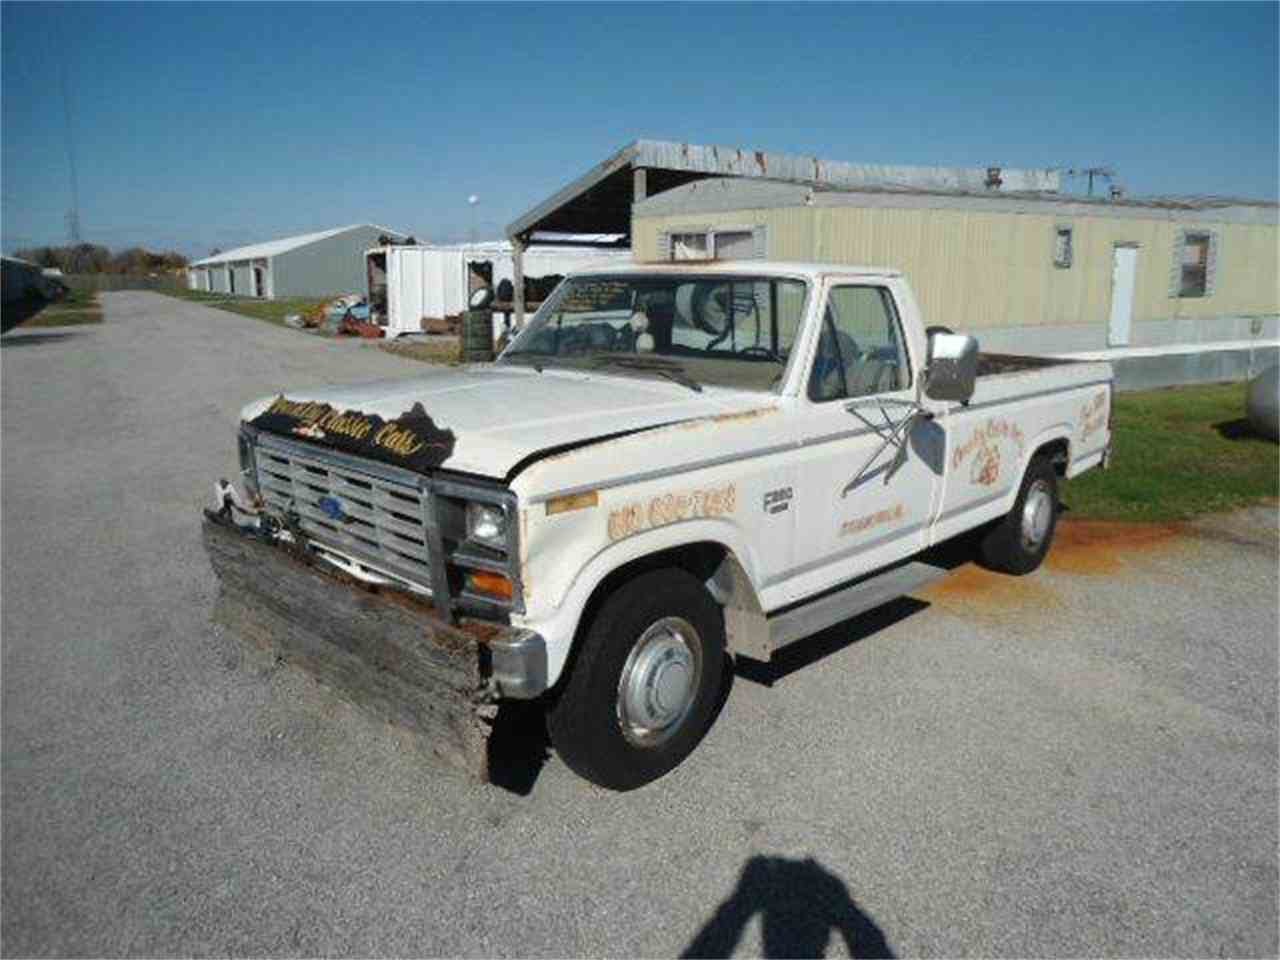 Find F250 1967 1977 Ford Highboy 2 Shop Every Store On The Internet 1969 F 250 Flatbed Cc938662 Cc1025368 00000000000000000 1983